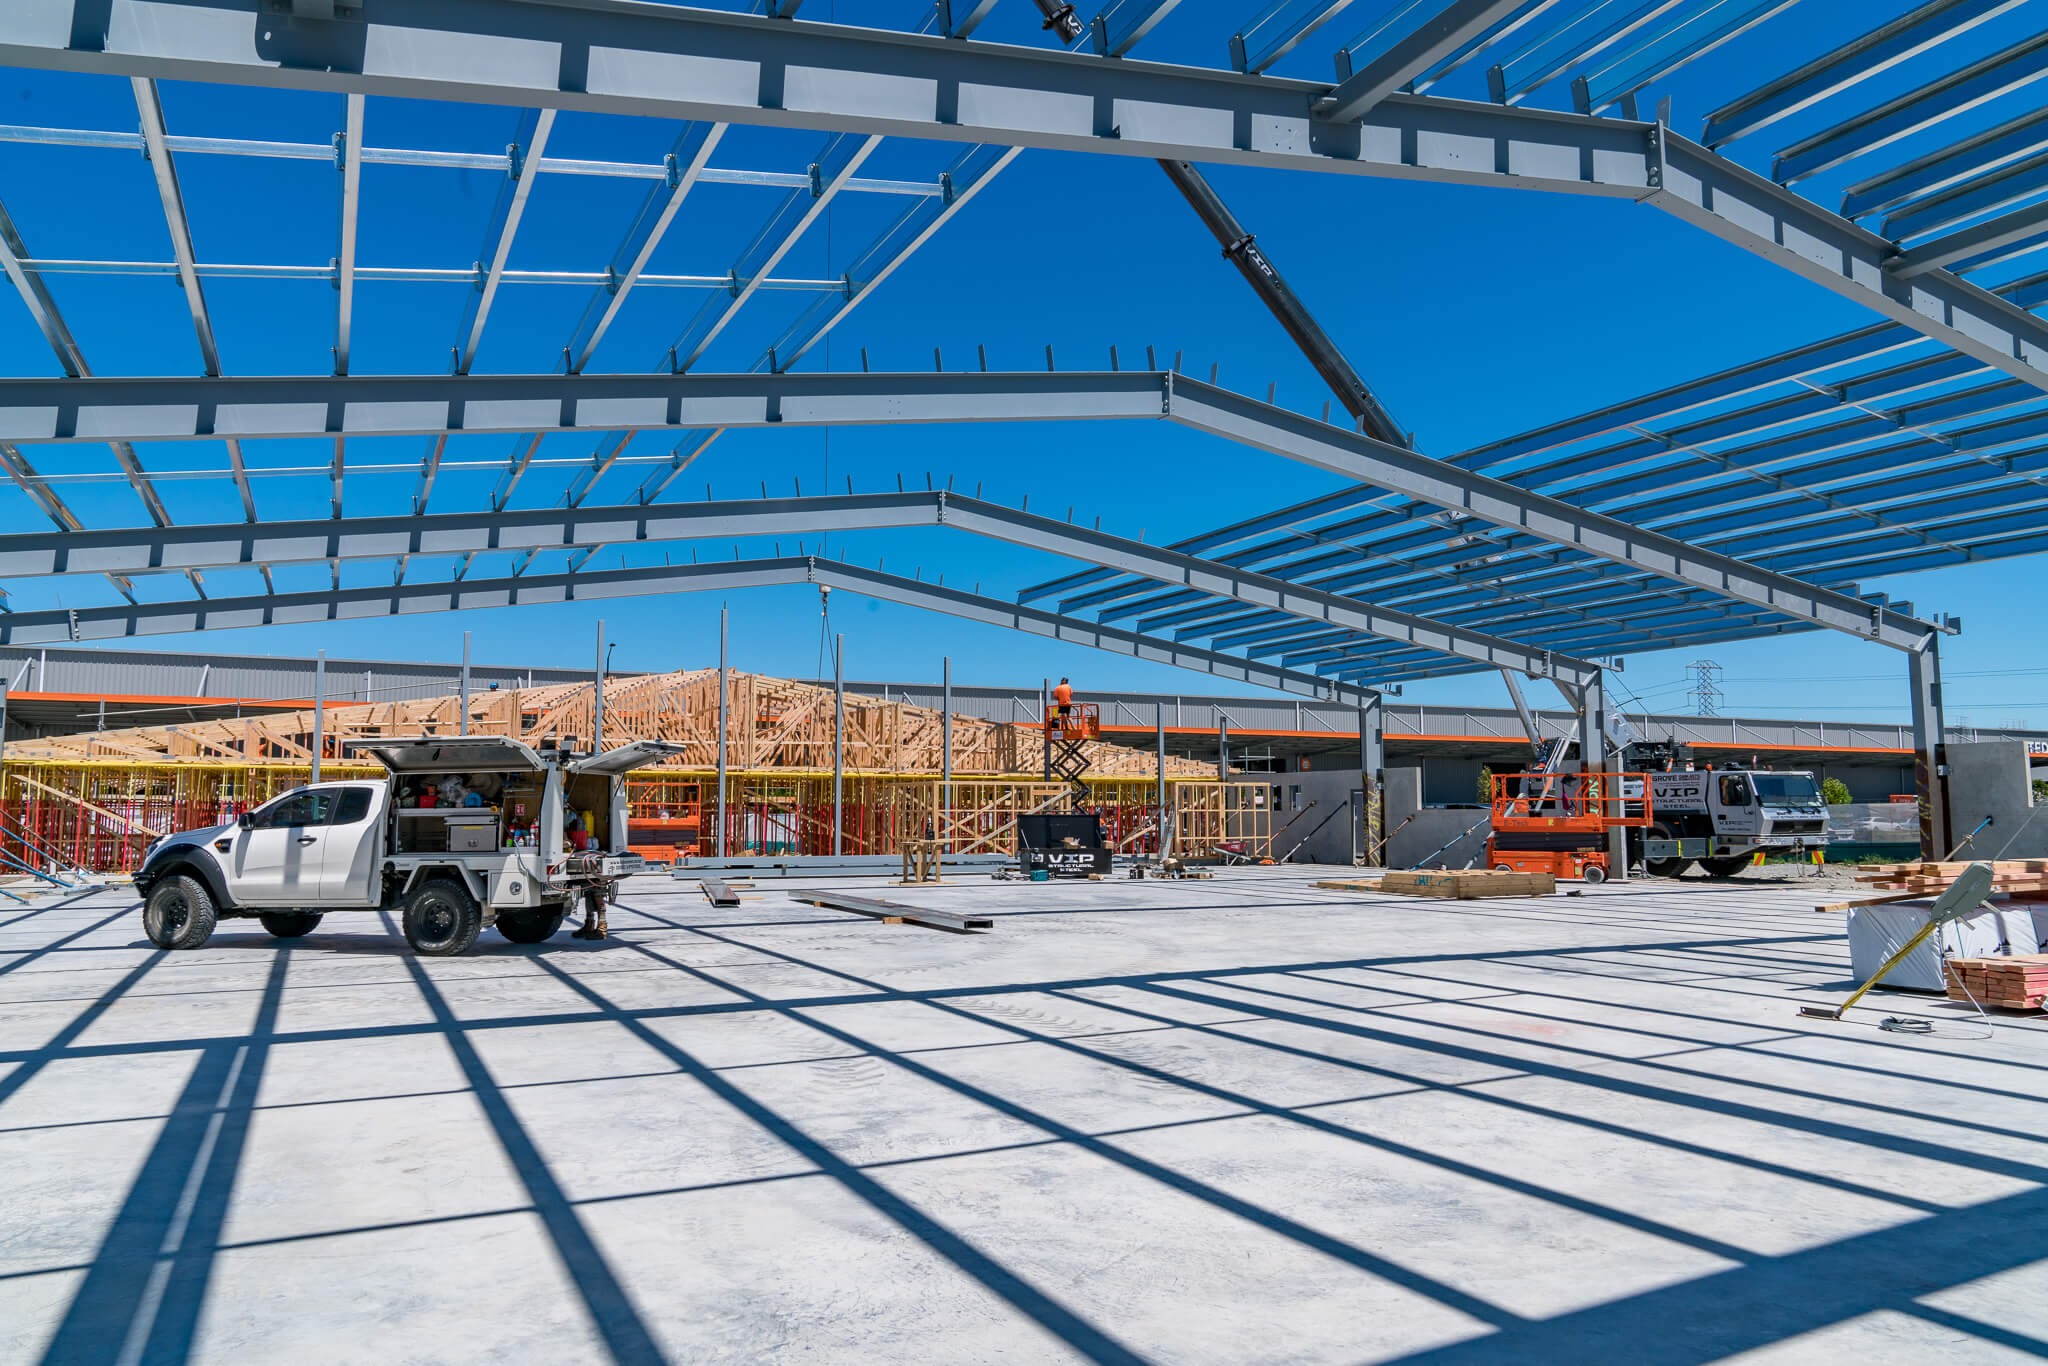 bg_cooke_construction_structural_steel_9-12-19_small_16